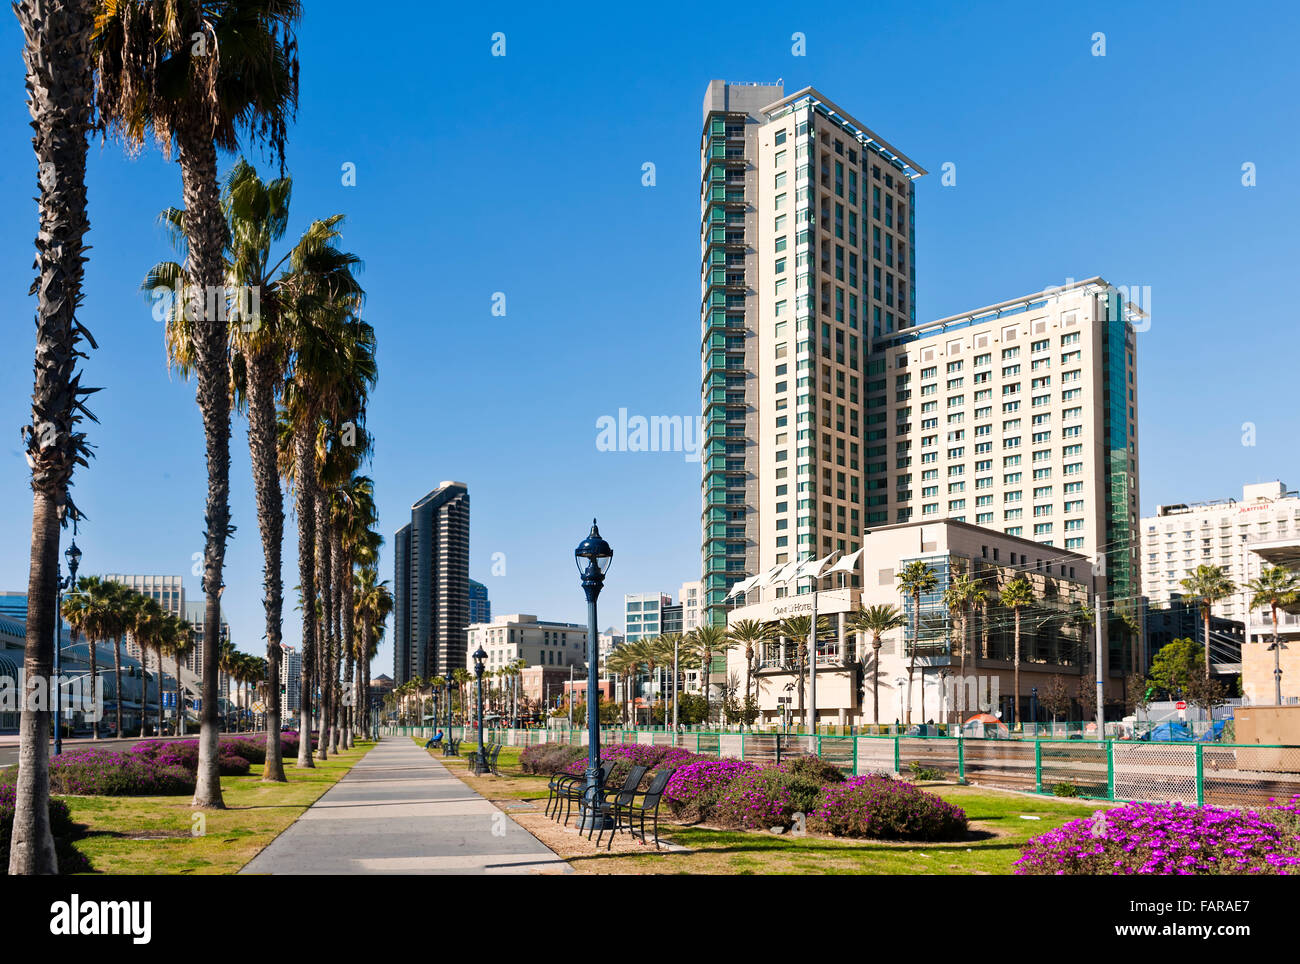 Downtown city scape with the Omni Hotel in San Diego, California - Stock Image